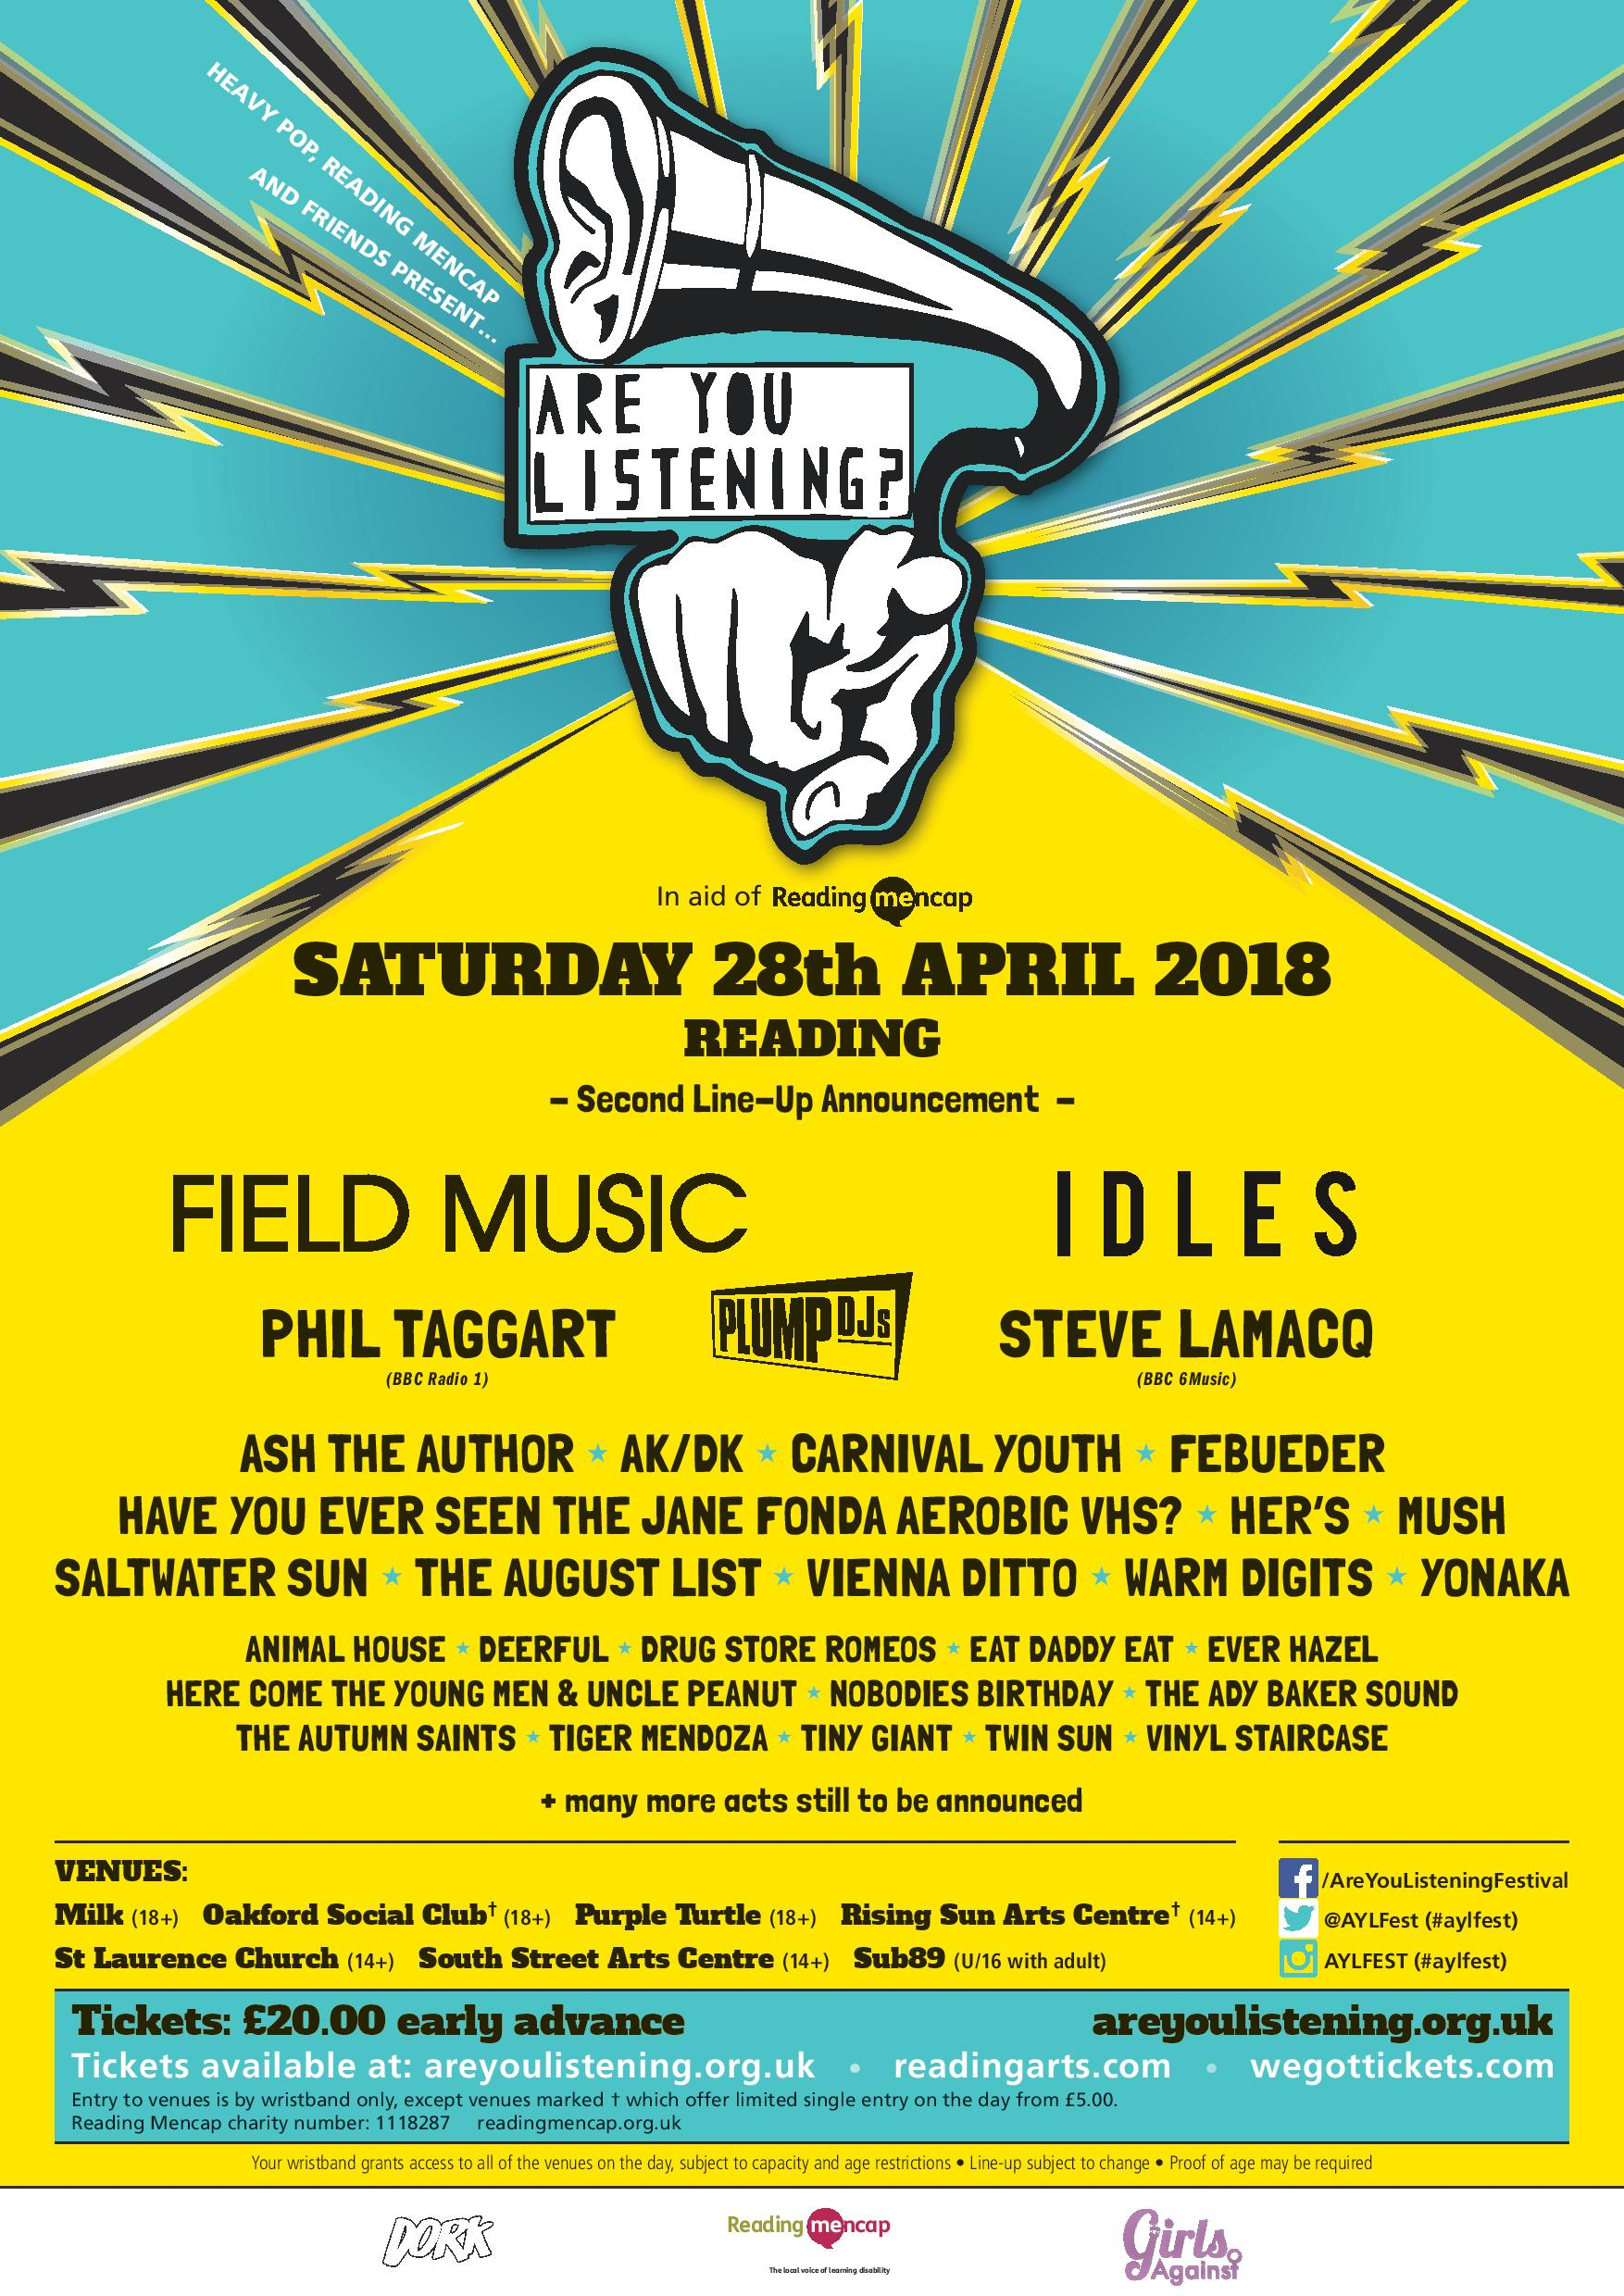 Reading's Are You Listening? Festival 2018 adds new bands including